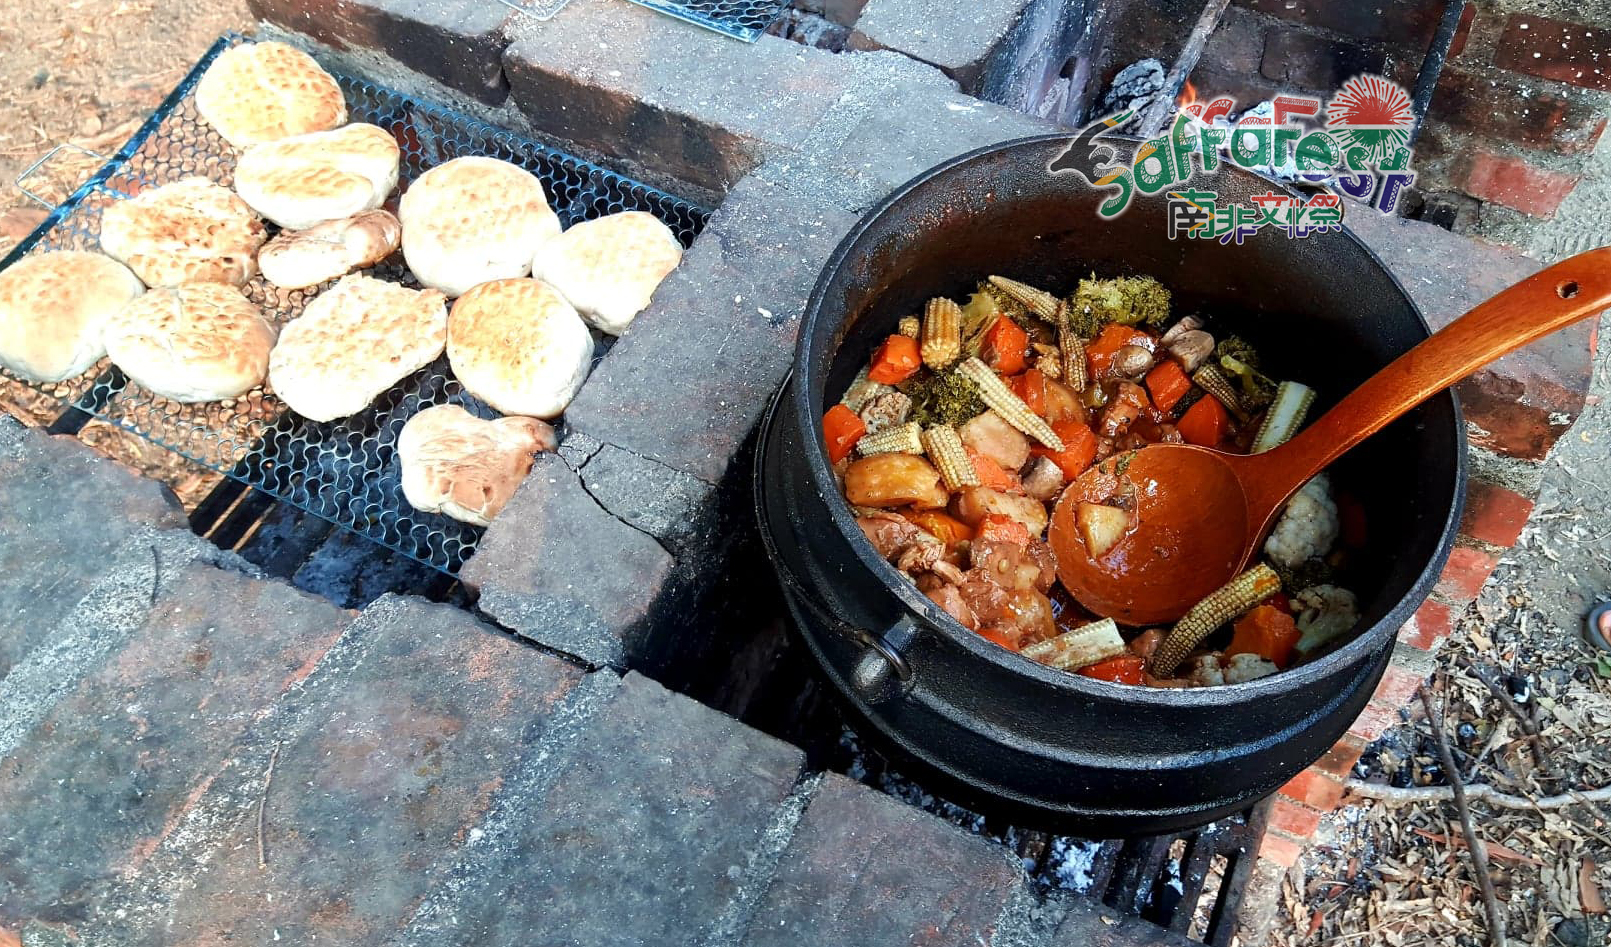 Potjie finished